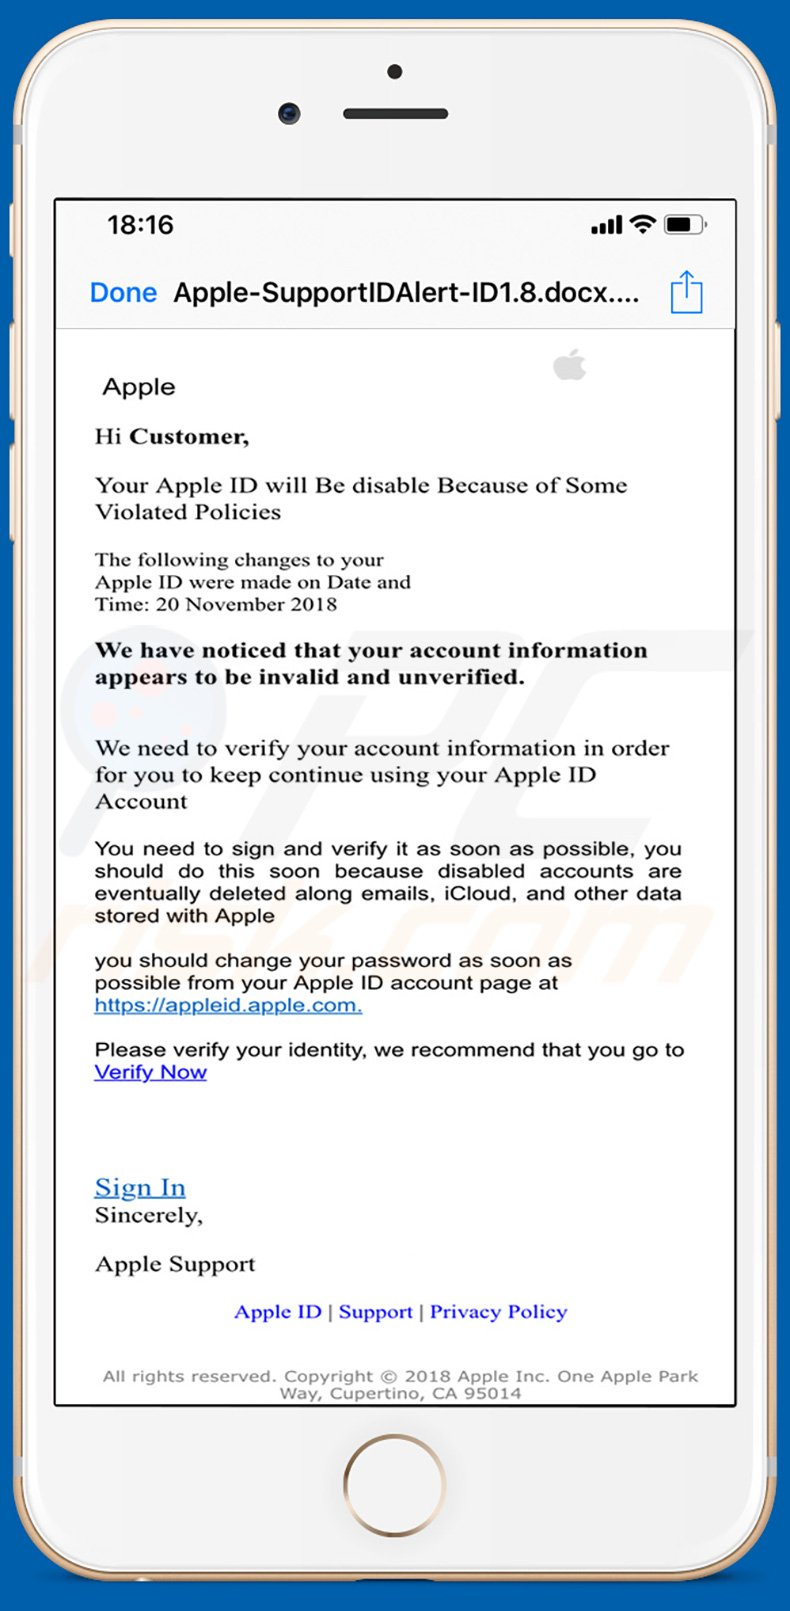 Apple Email Virus phishing campaign (sample 2)